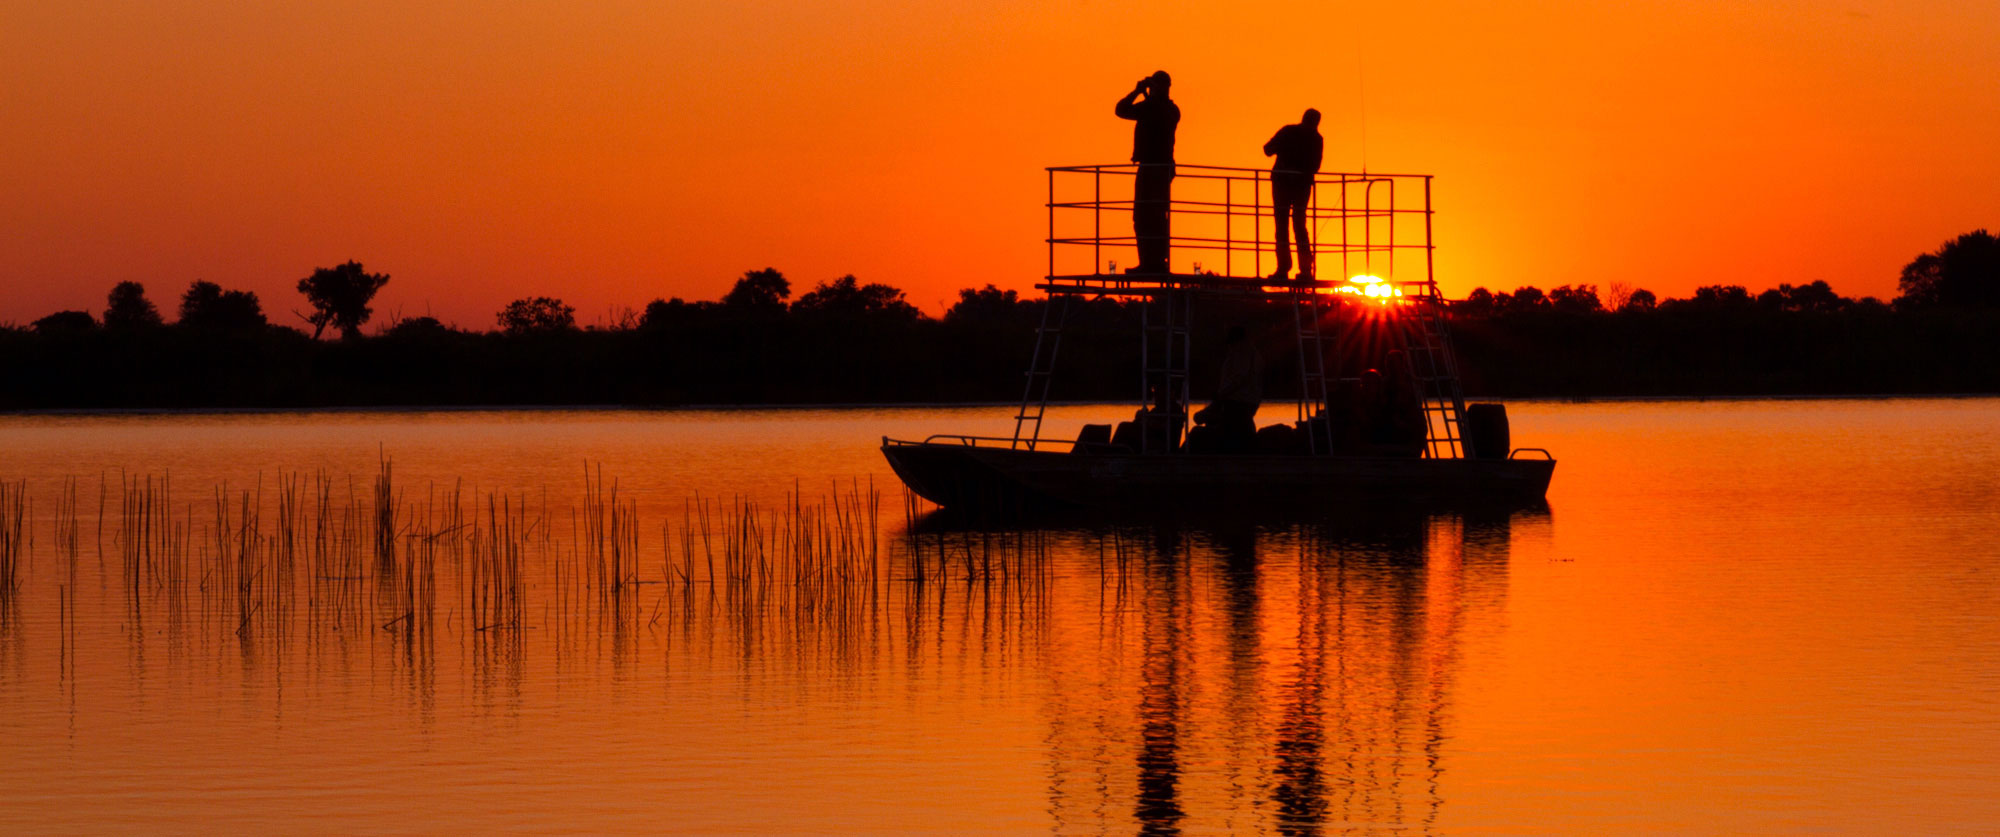 Botswana Safari Tour: Peak Season Okavango Adventure - Sunset Safari Cruise